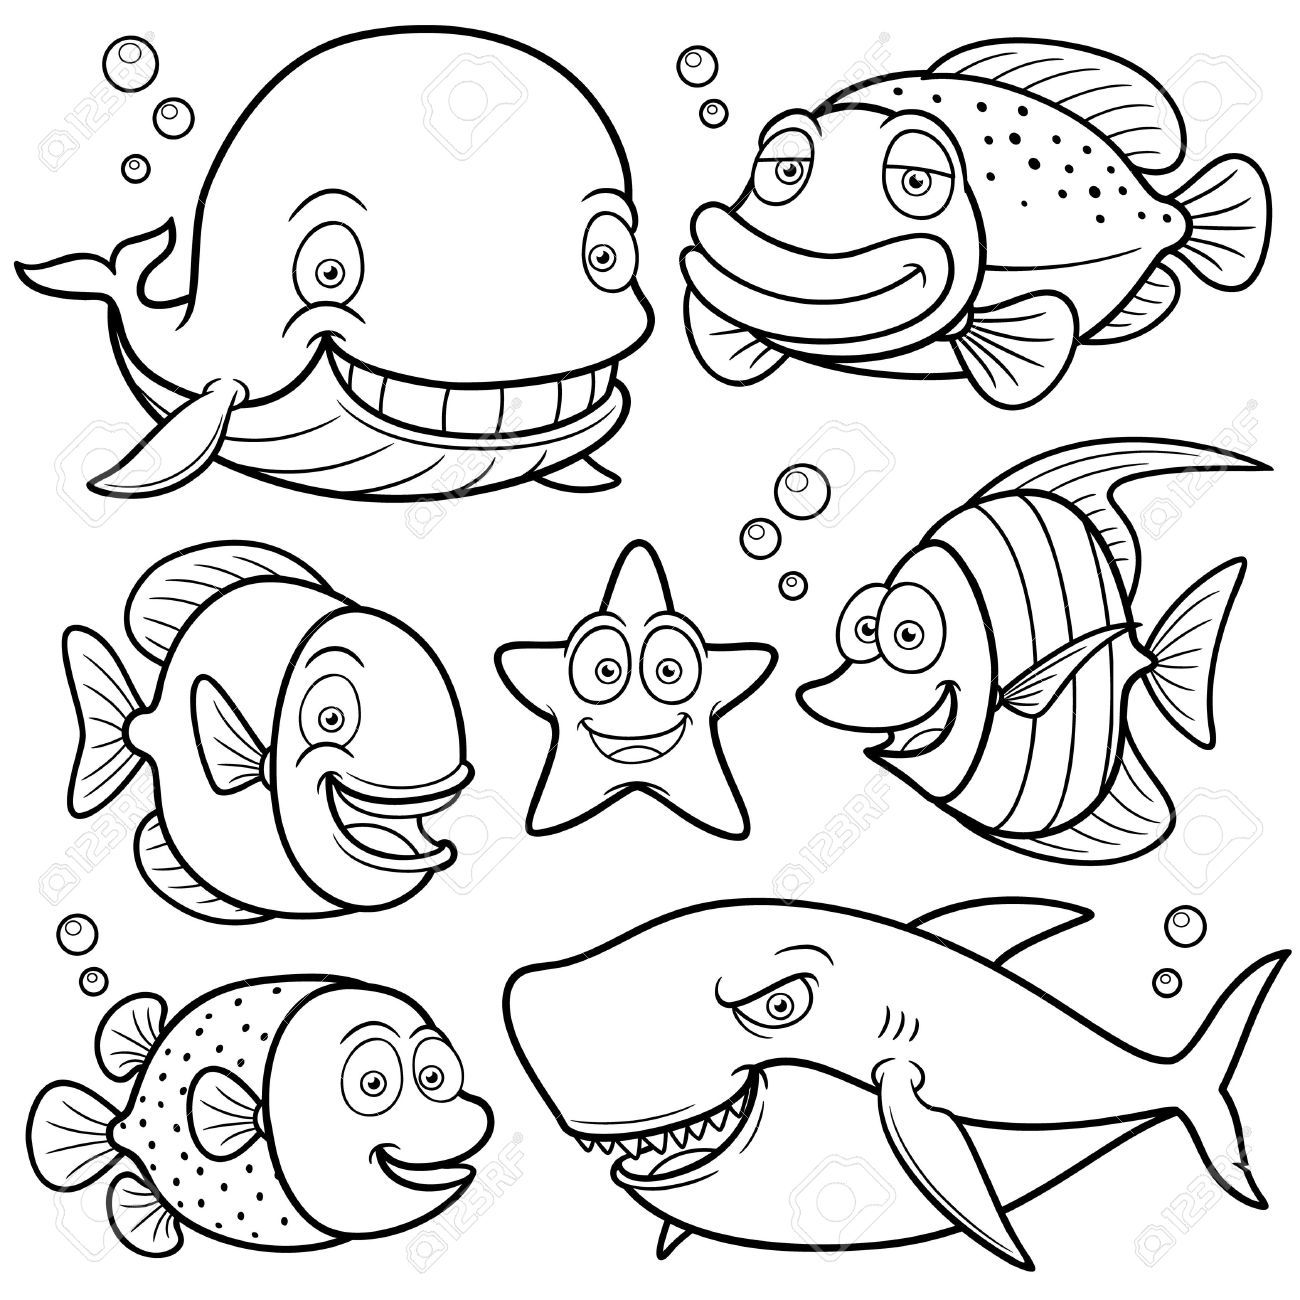 25+ Sea animals clipart coloring pages info